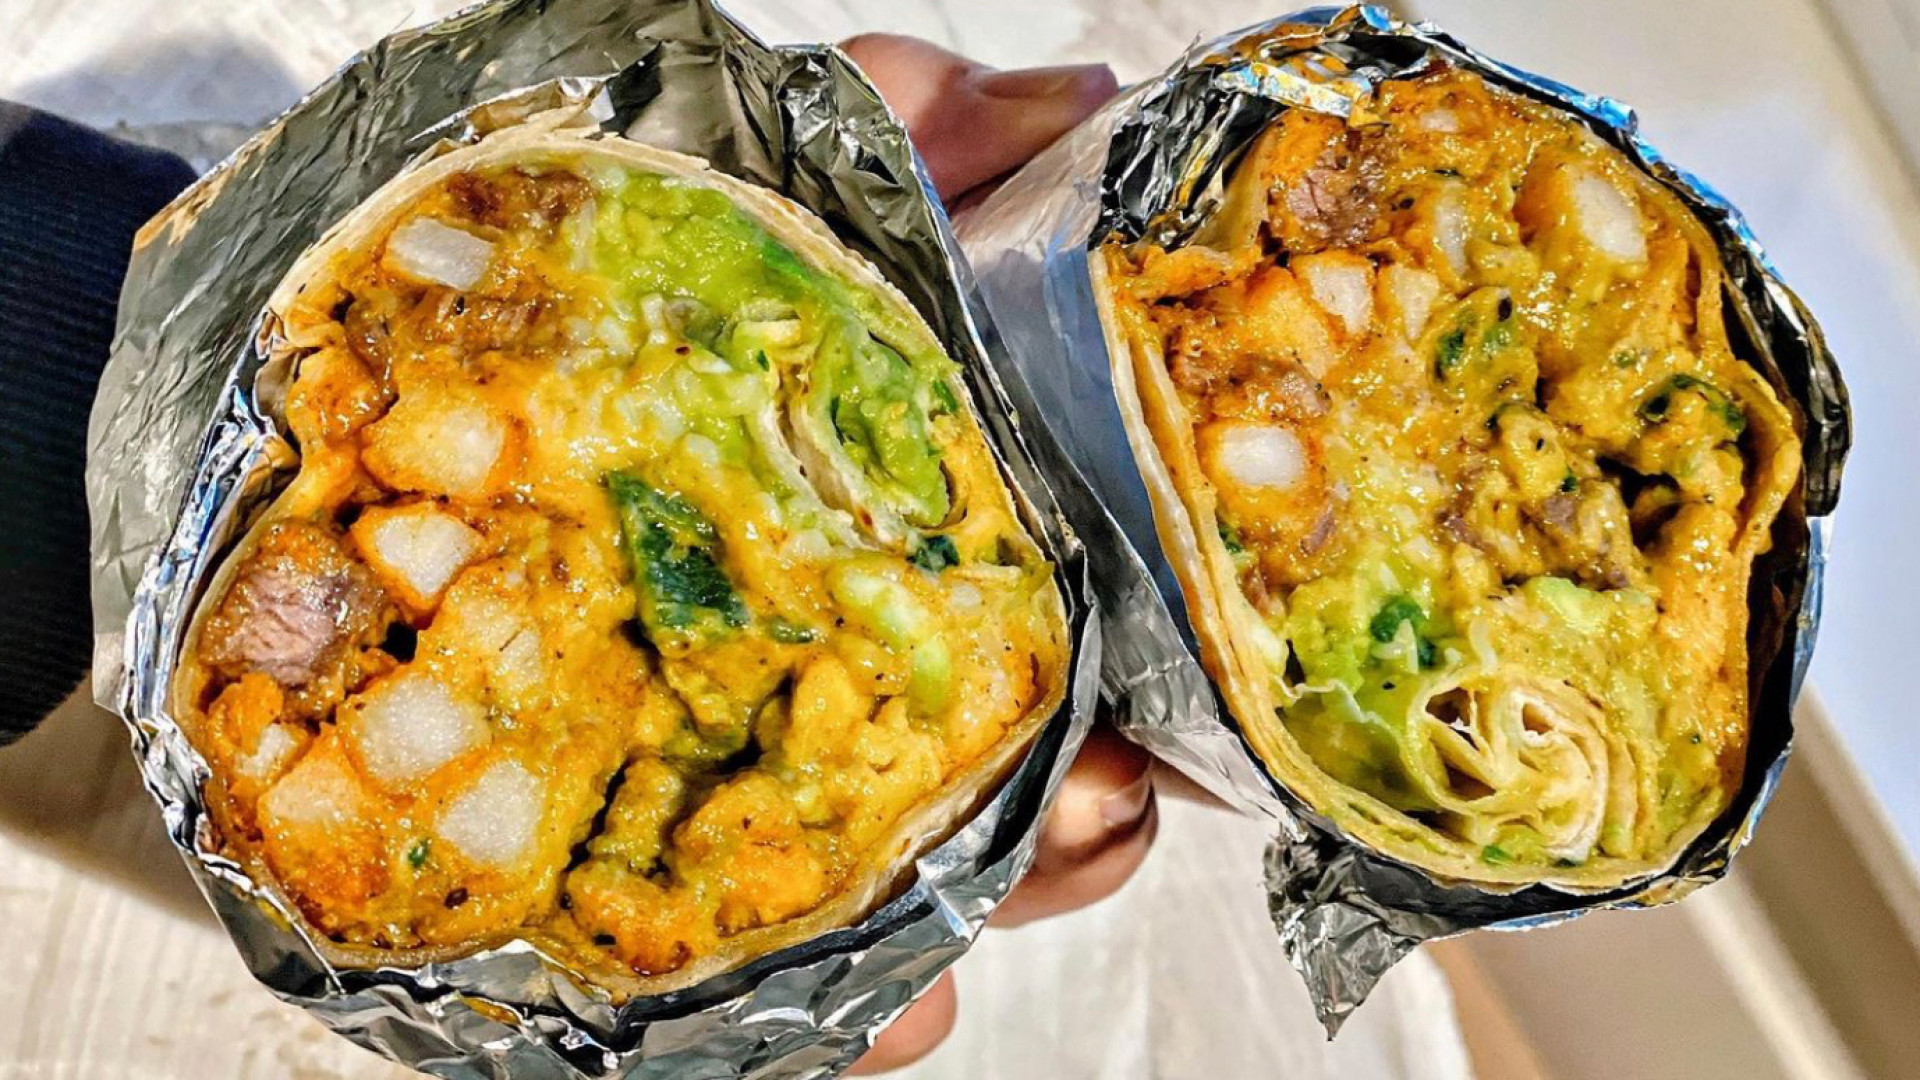 The best new restaurants in Toronto | NorCal burrito at Man vs Fries